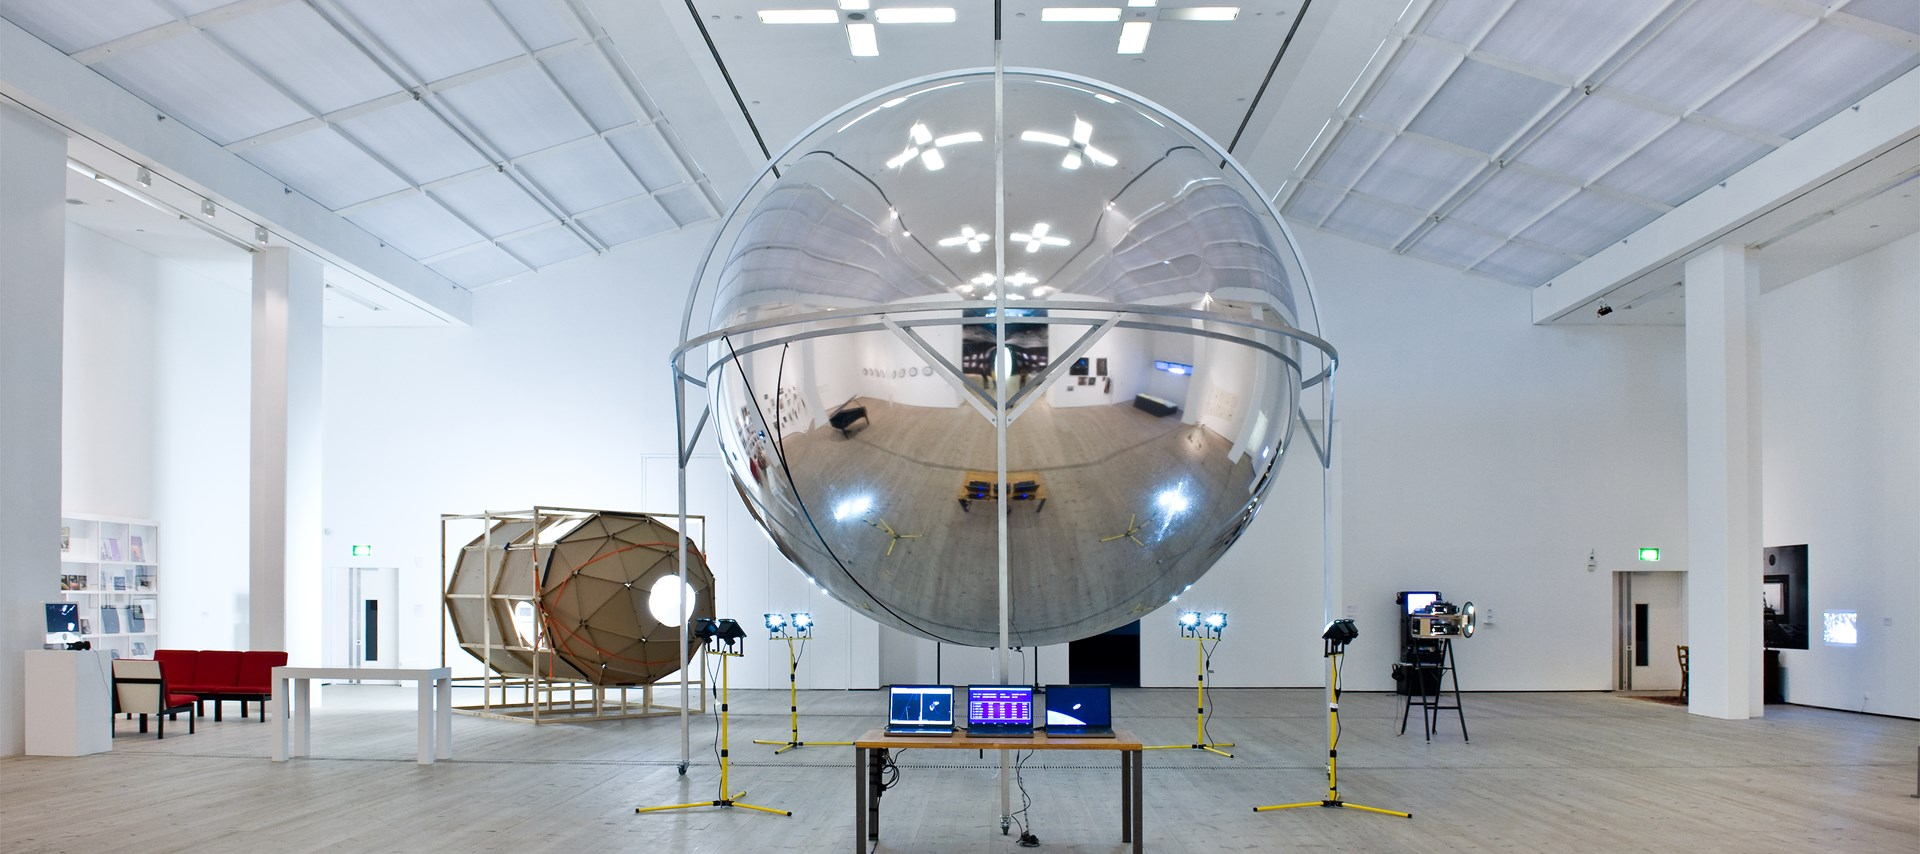 They Used to Call it the Moon: Installation image by Colin Davison